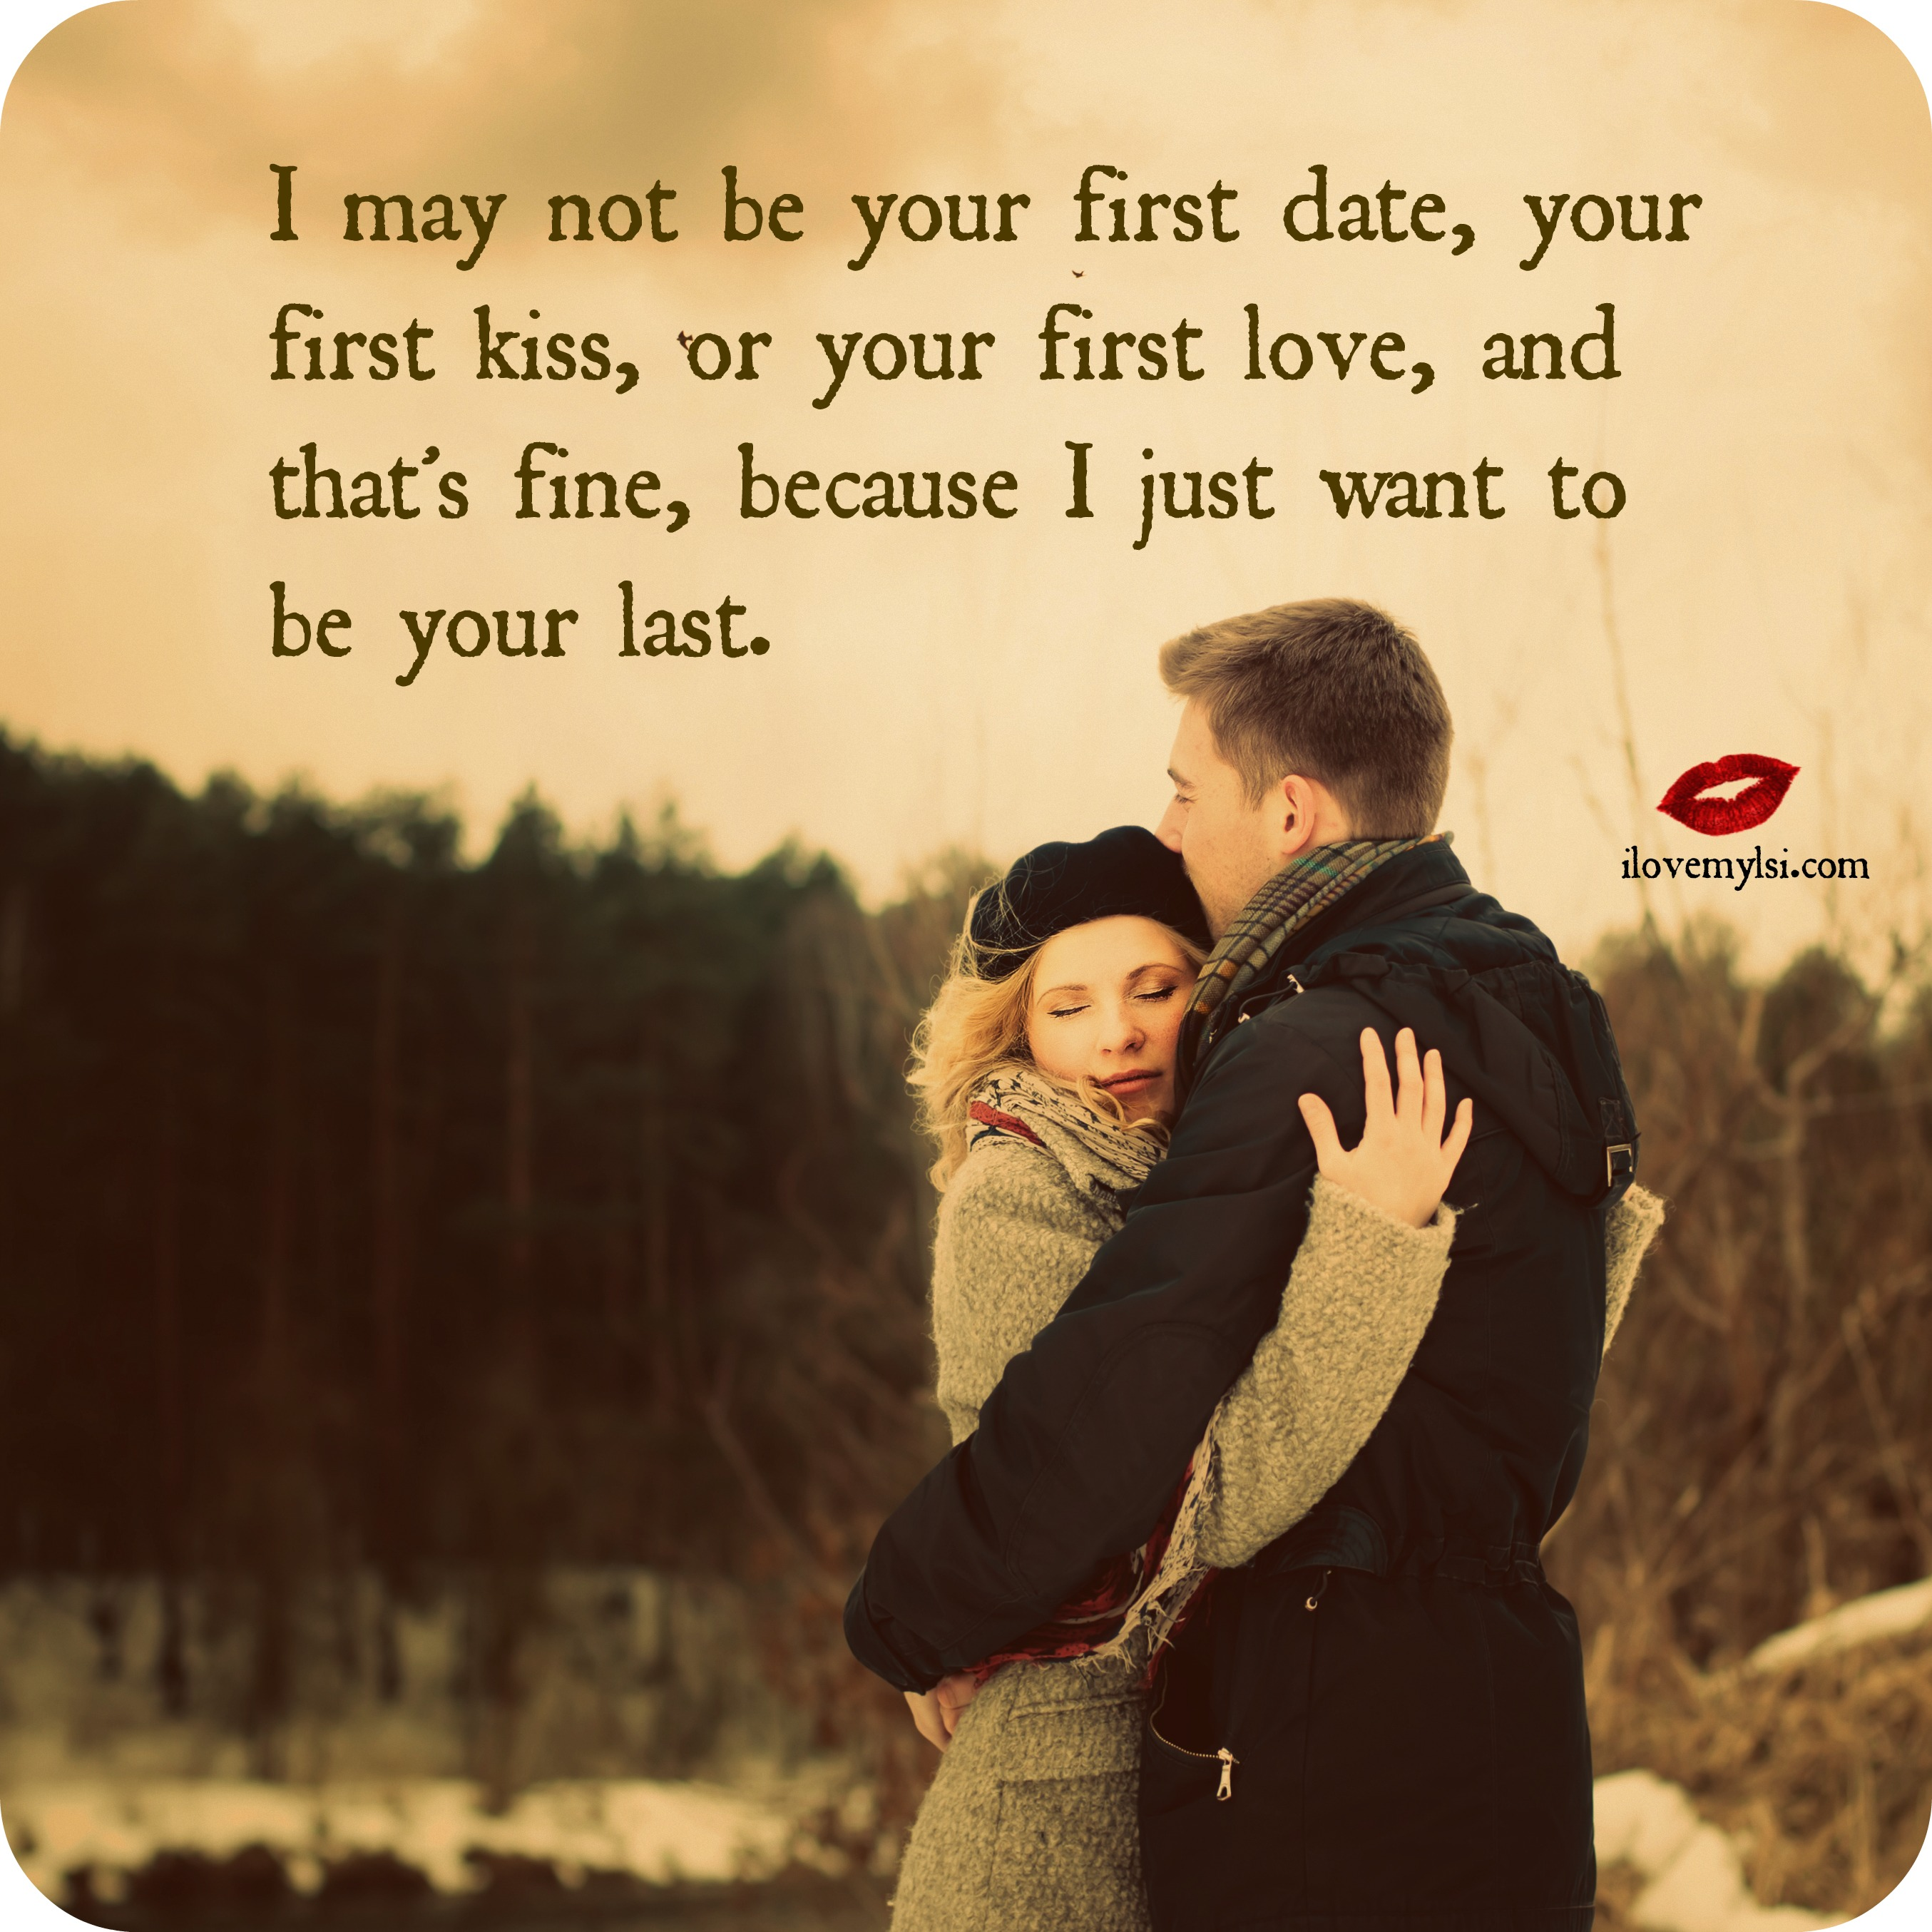 I just want to be your last - I Love My LSI